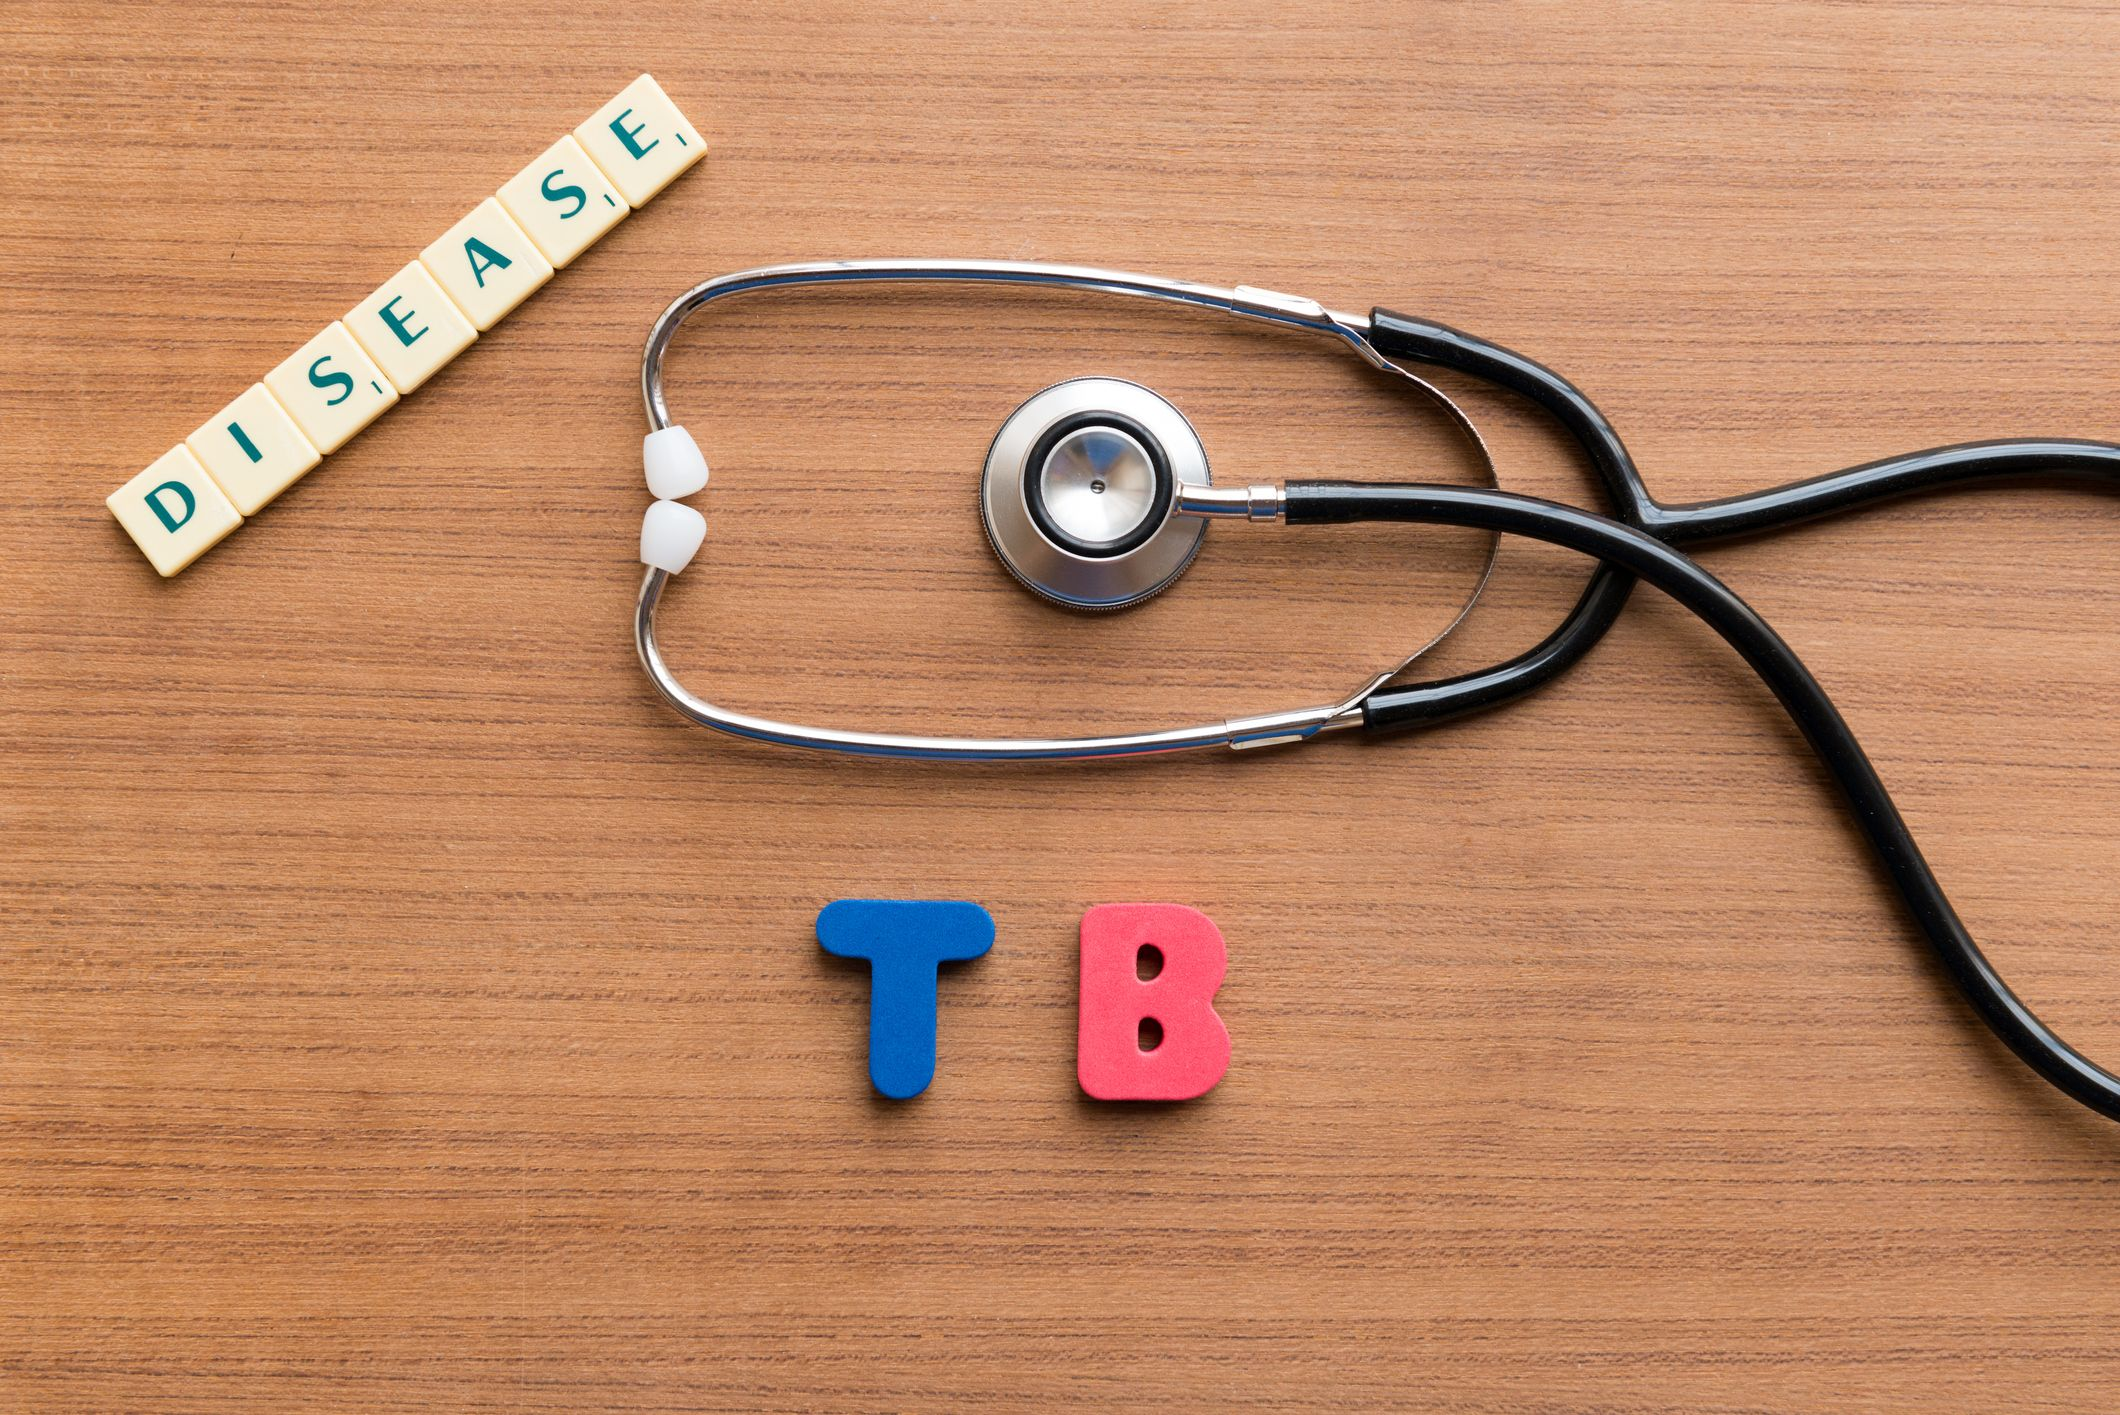 Tuberculosis: symptoms, treatment and prevention